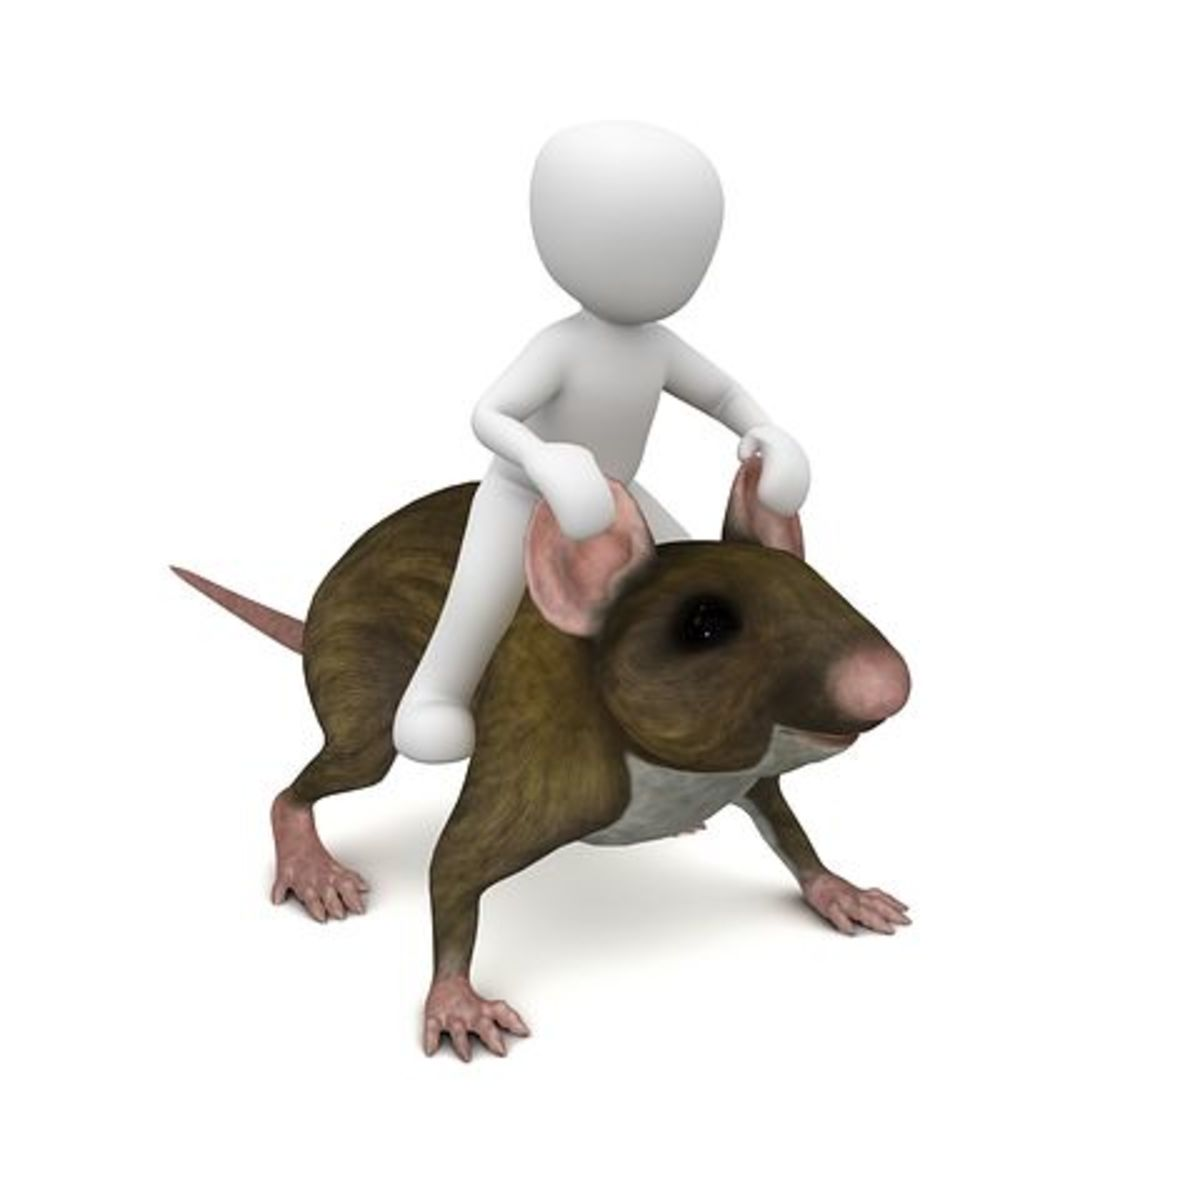 three-great-ways-to-kill-rats-in-the-home